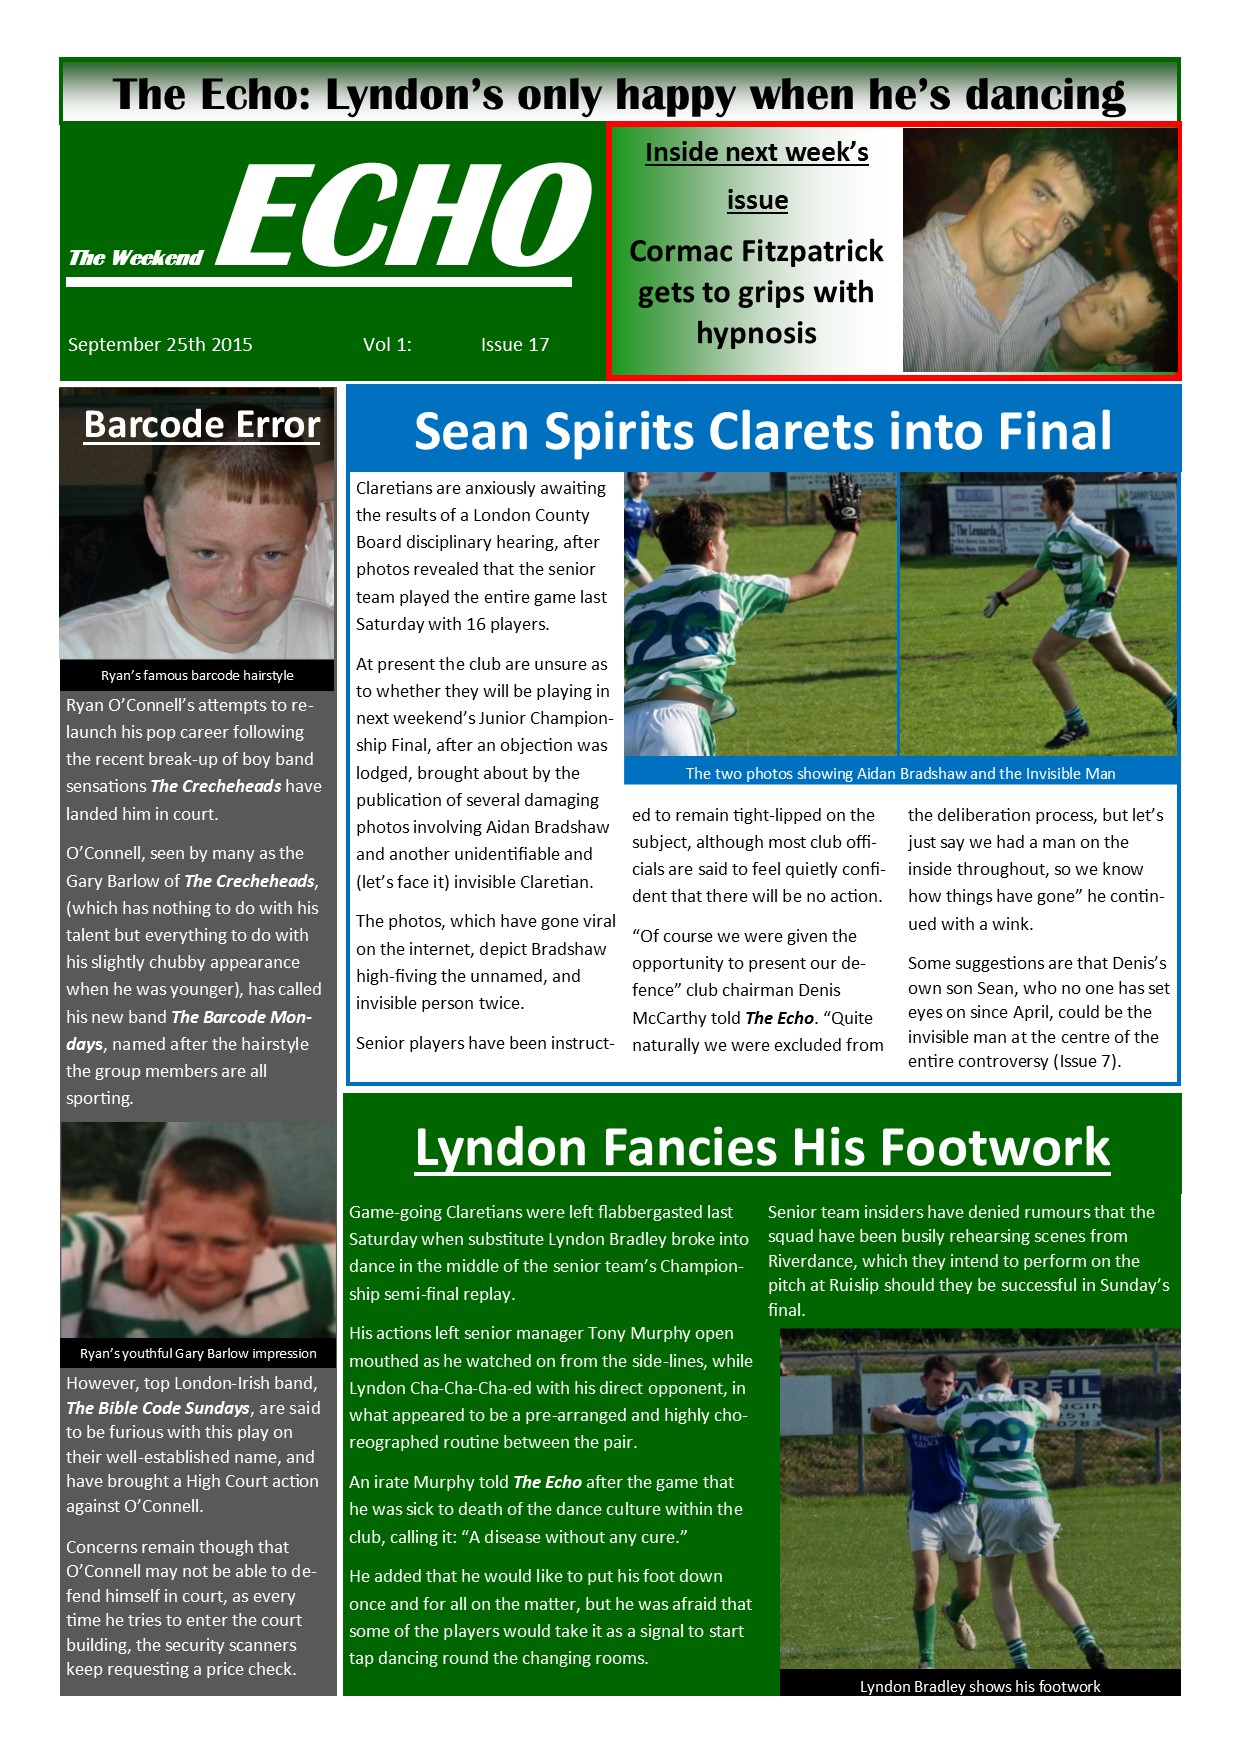 Weekend Echo Issue 17. The weekly newsletter from St Clarets GFC in London. London's best GAA club. A Gaelic football club to be proud of.